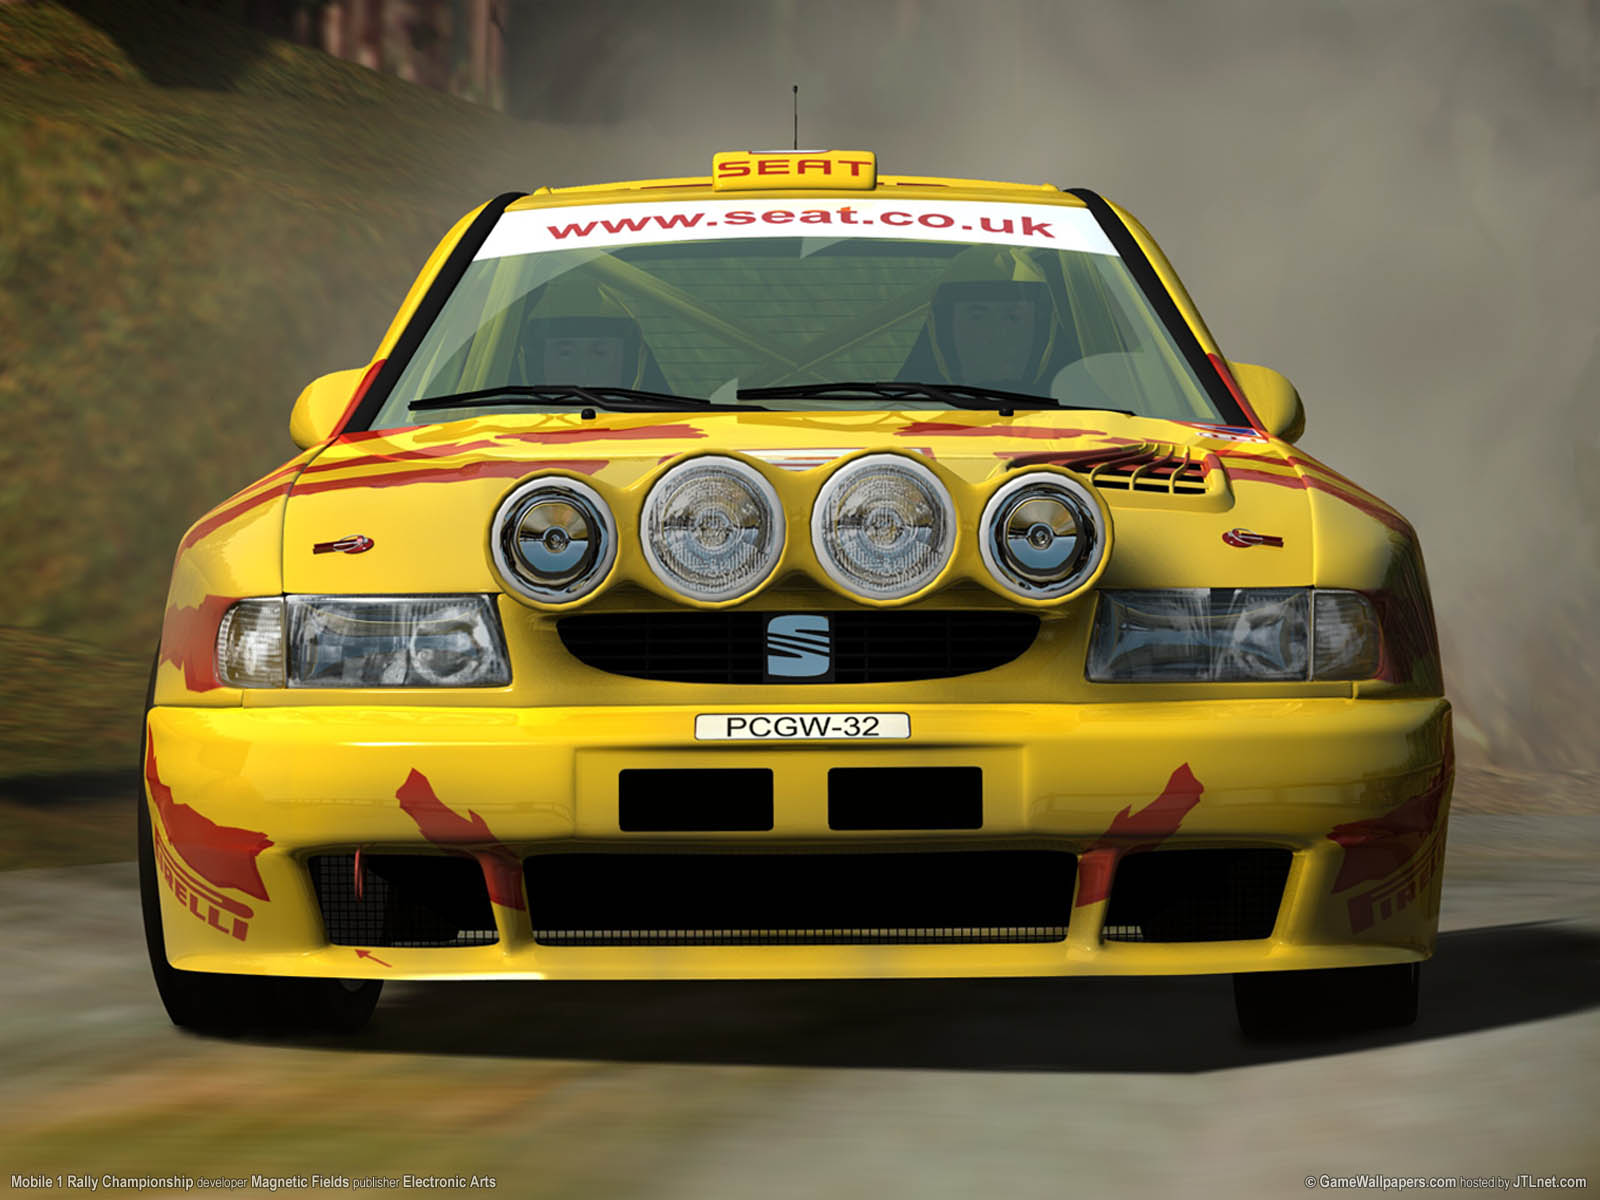 Mobile 1 Rally Championshipνmmer=05 achtergrond  1600x1200